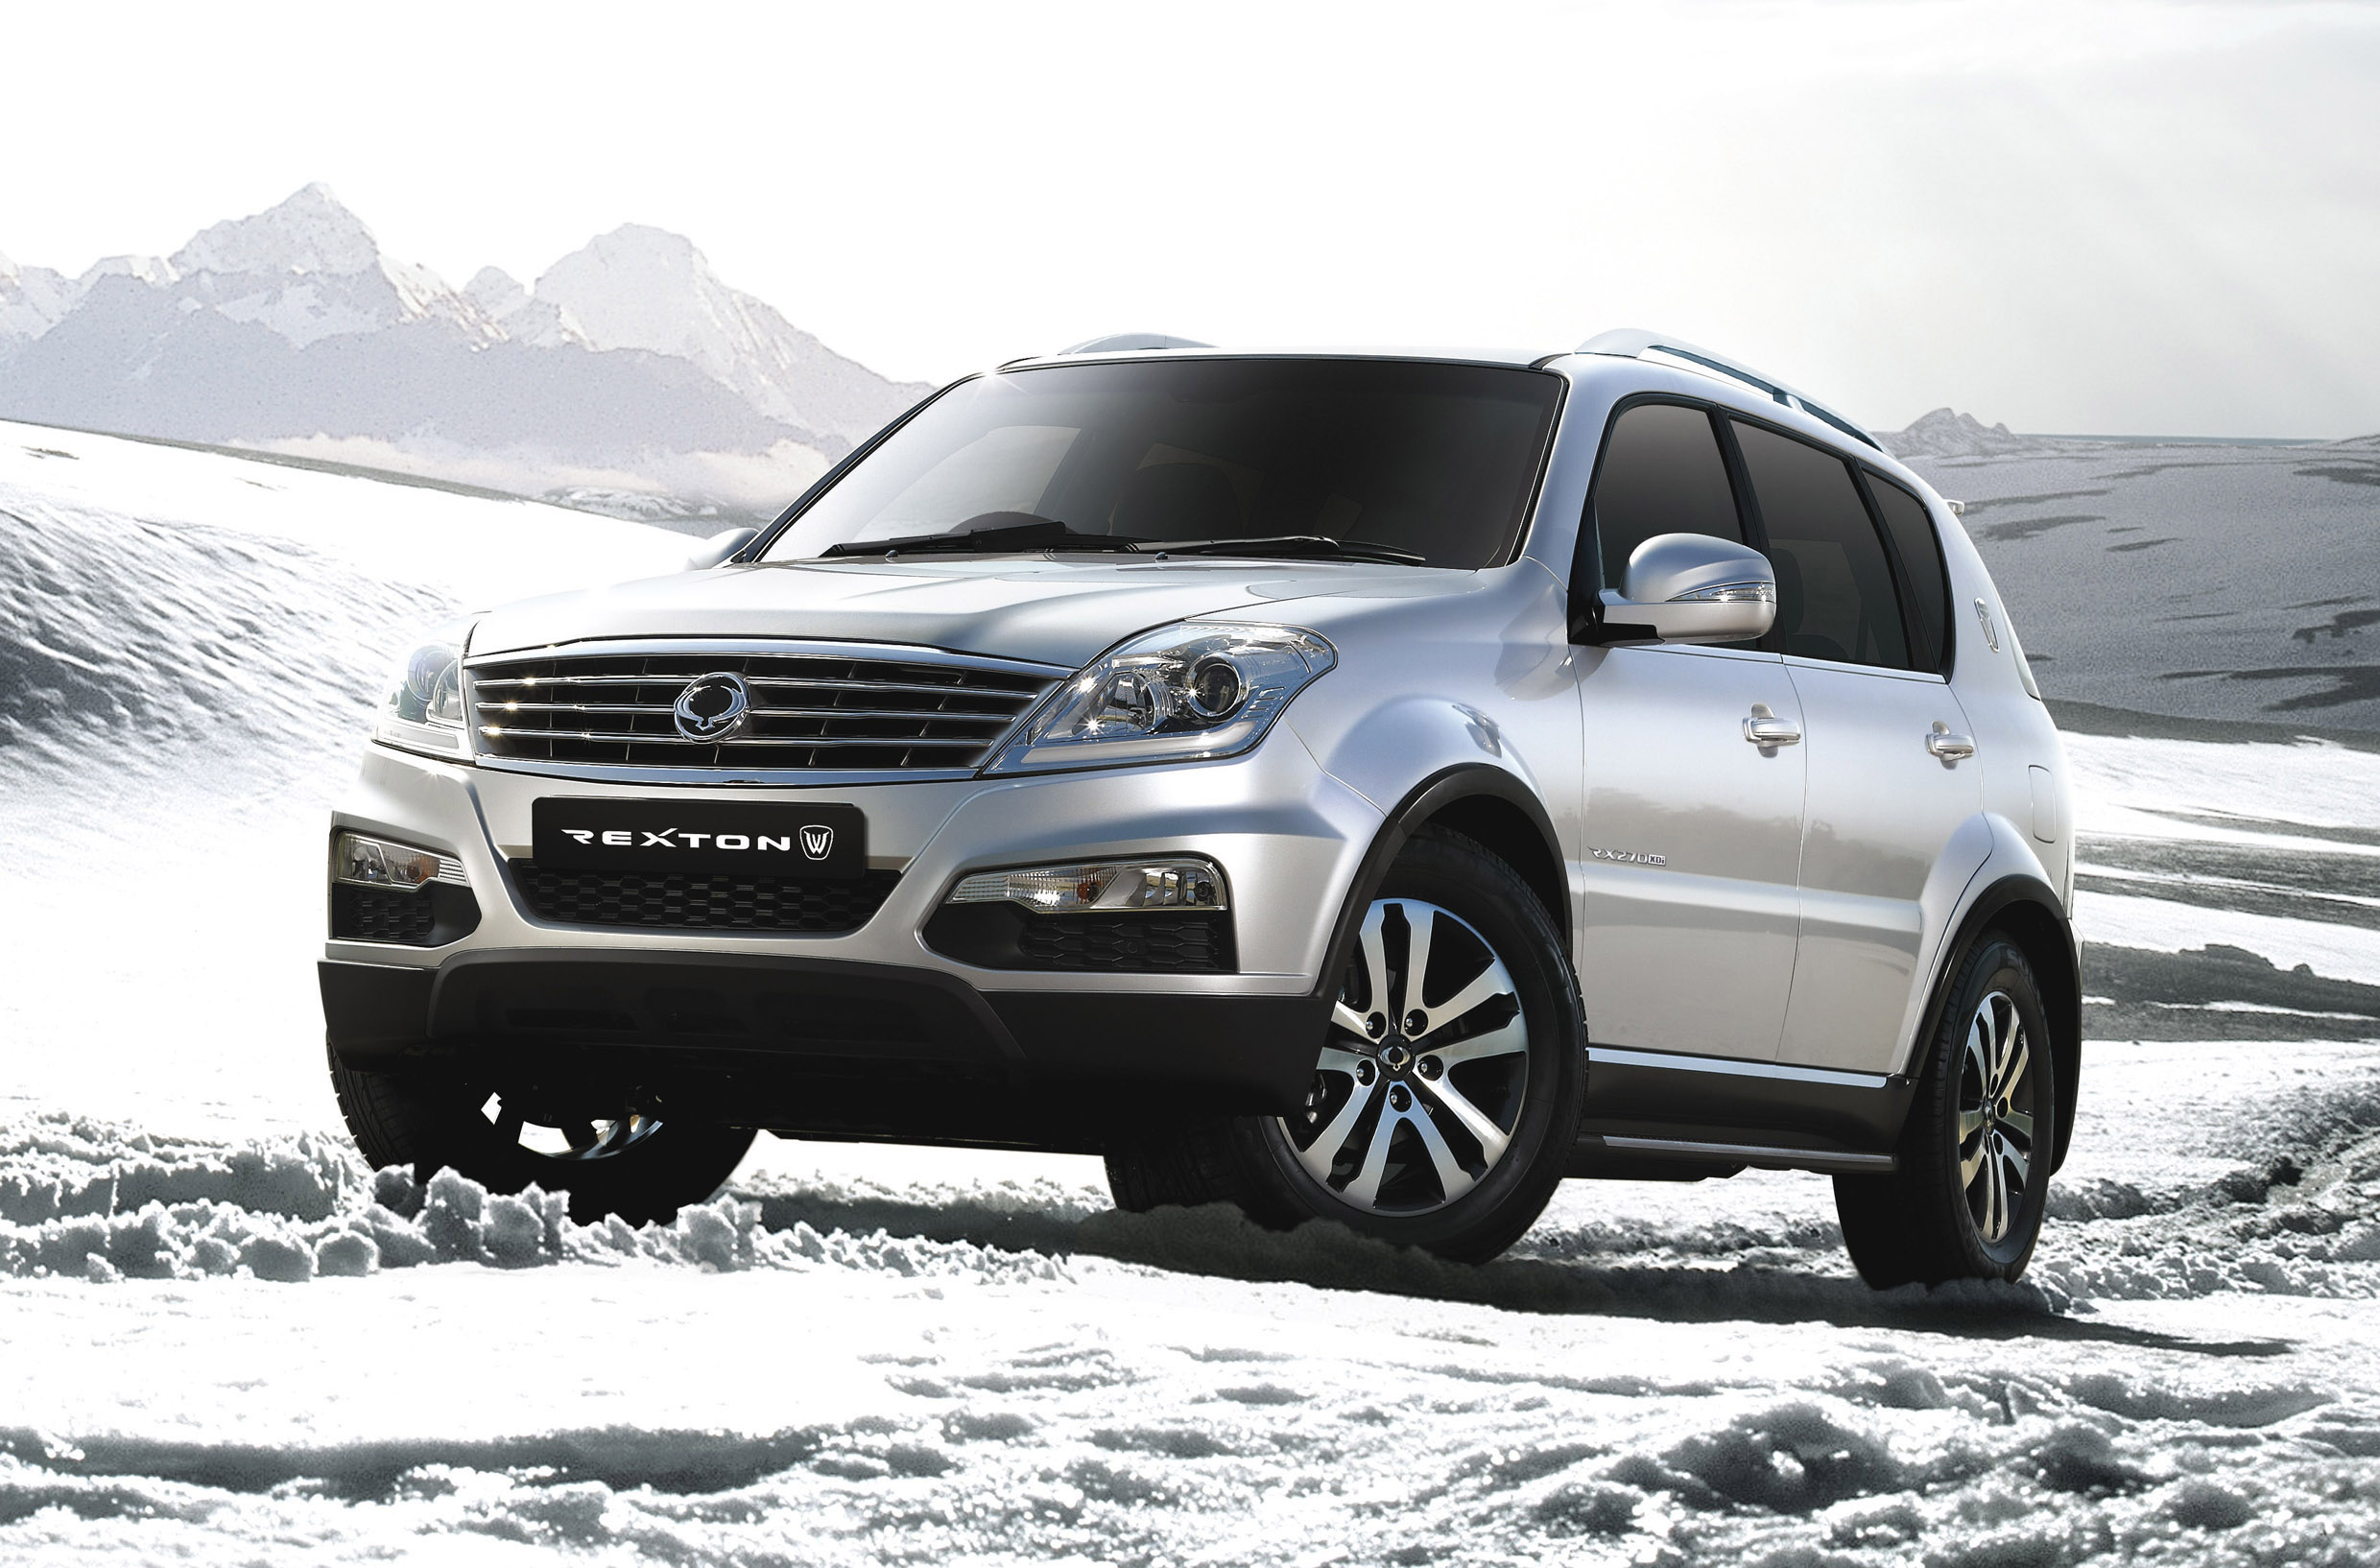 2014 ssangyong rexton w full details. Black Bedroom Furniture Sets. Home Design Ideas